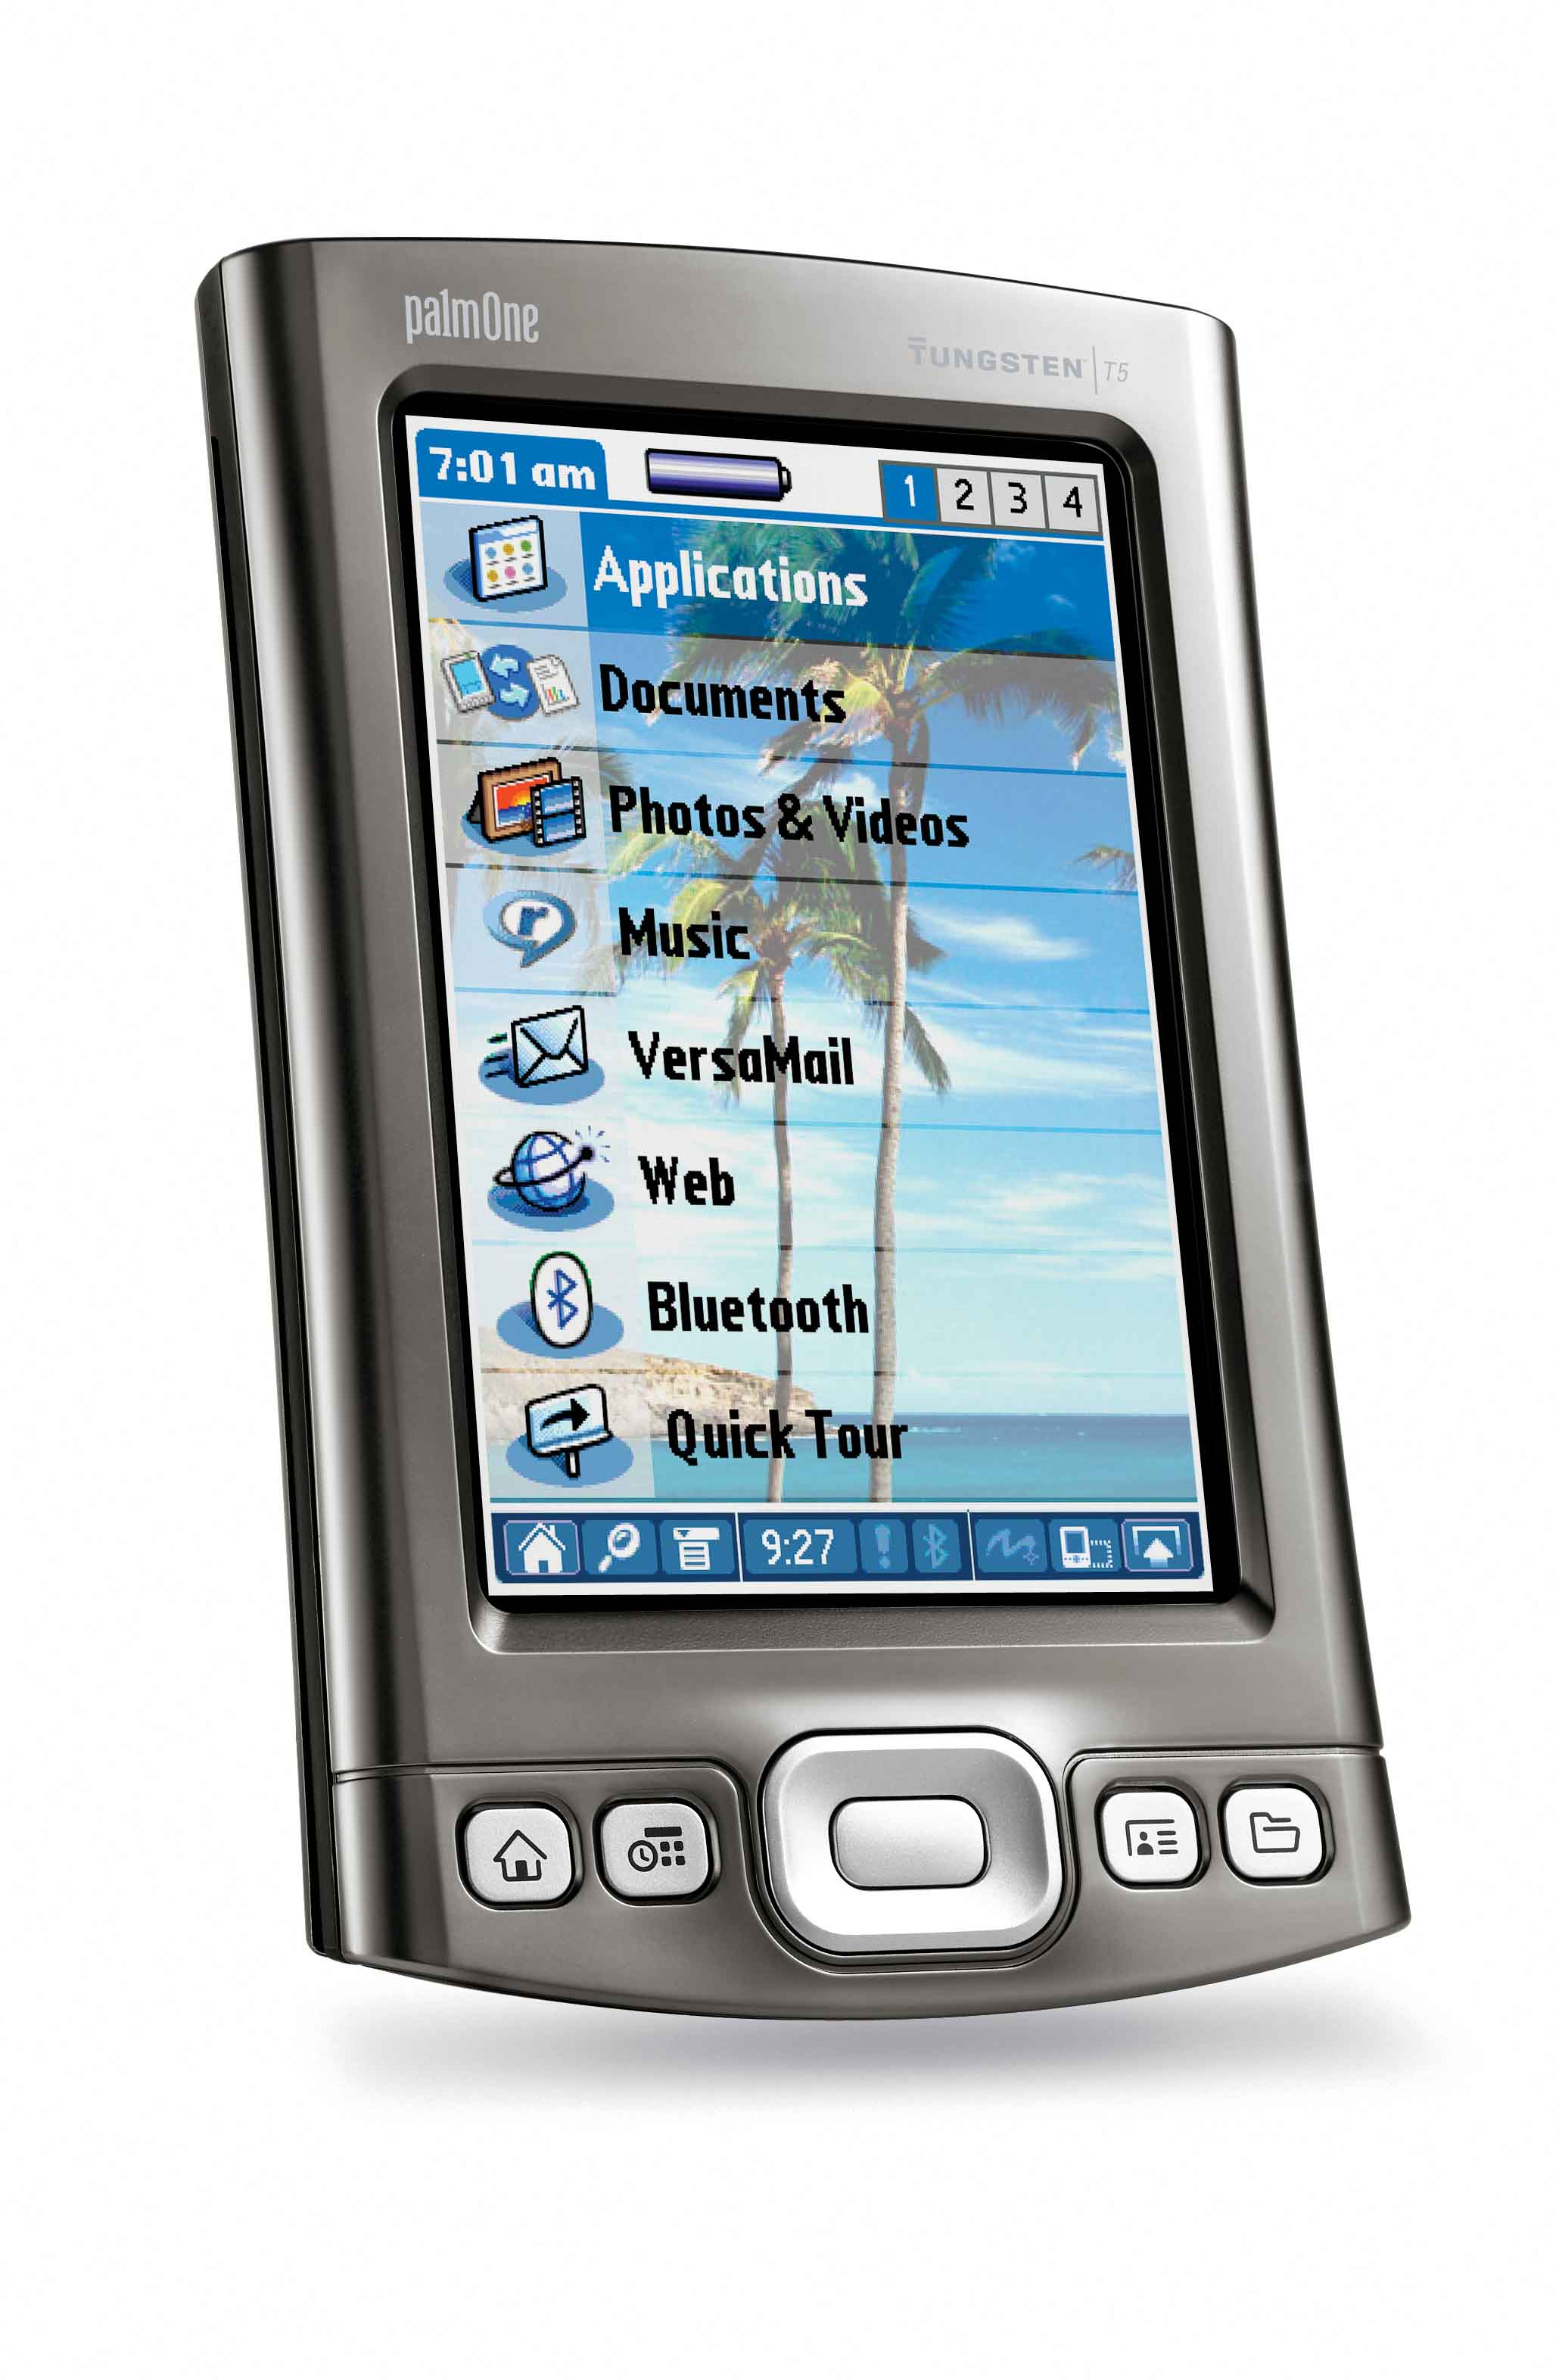 I'm running this photo of a Palm Tungsten T5 mostly because I still have the email that Palm sent to me with it as a file attachment